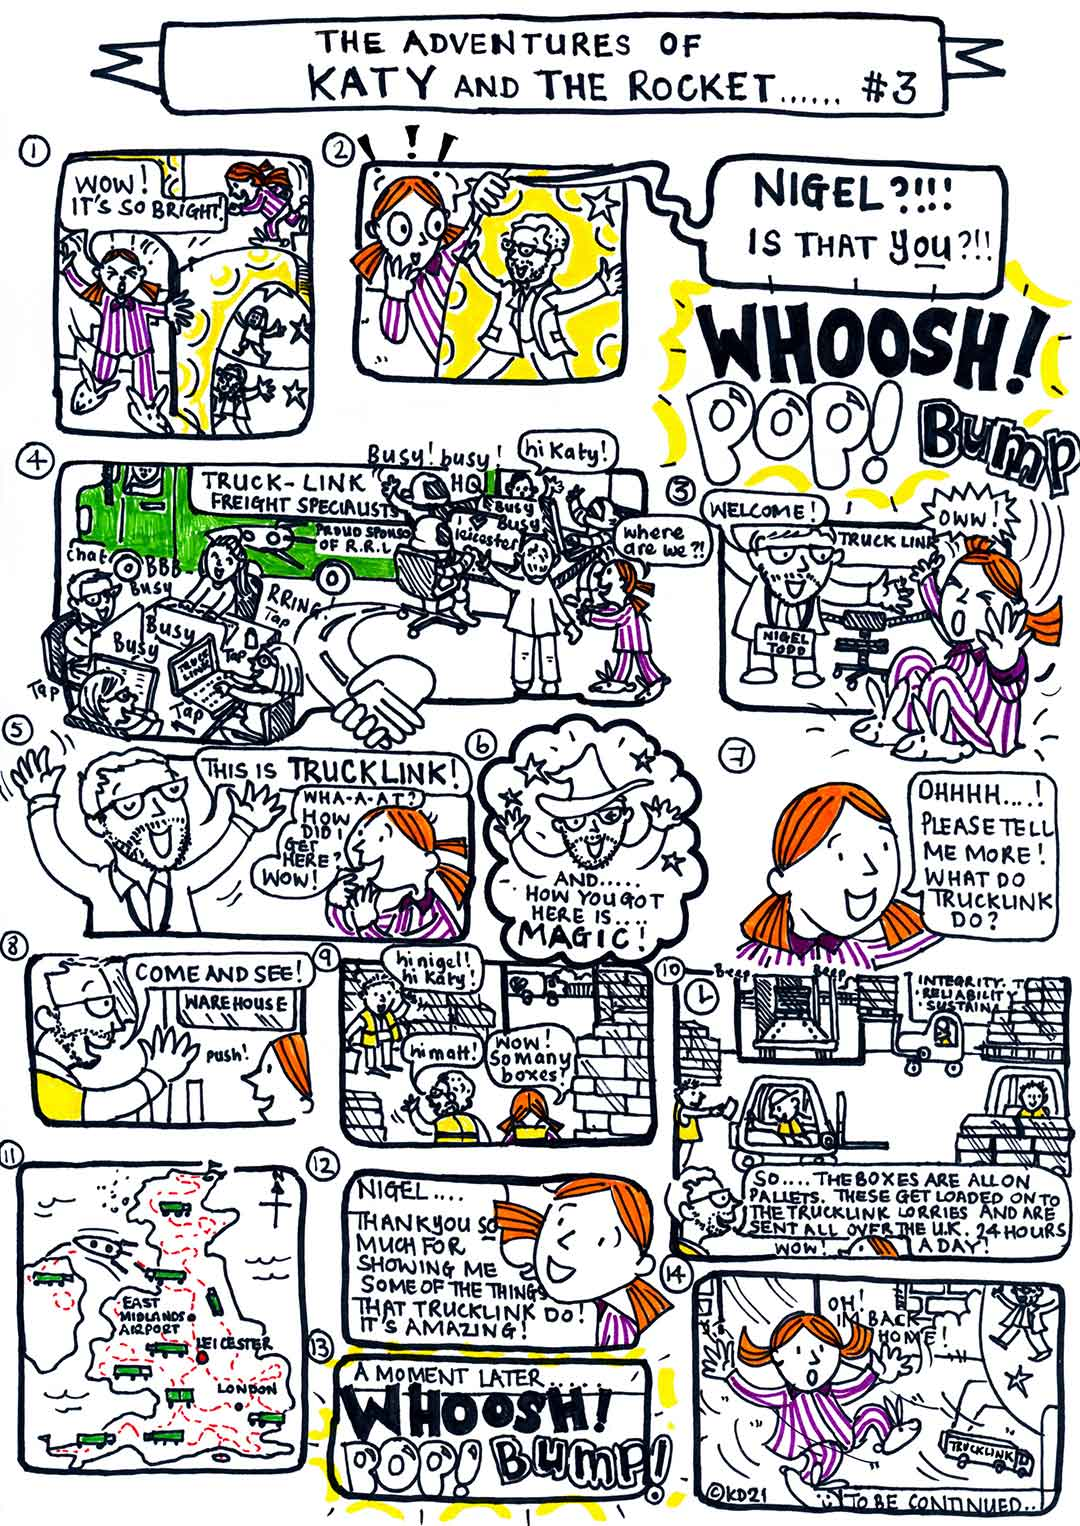 The Adventures of Katy and the Rocket - No.3 - Trucklink - by Katy Dynes 2021